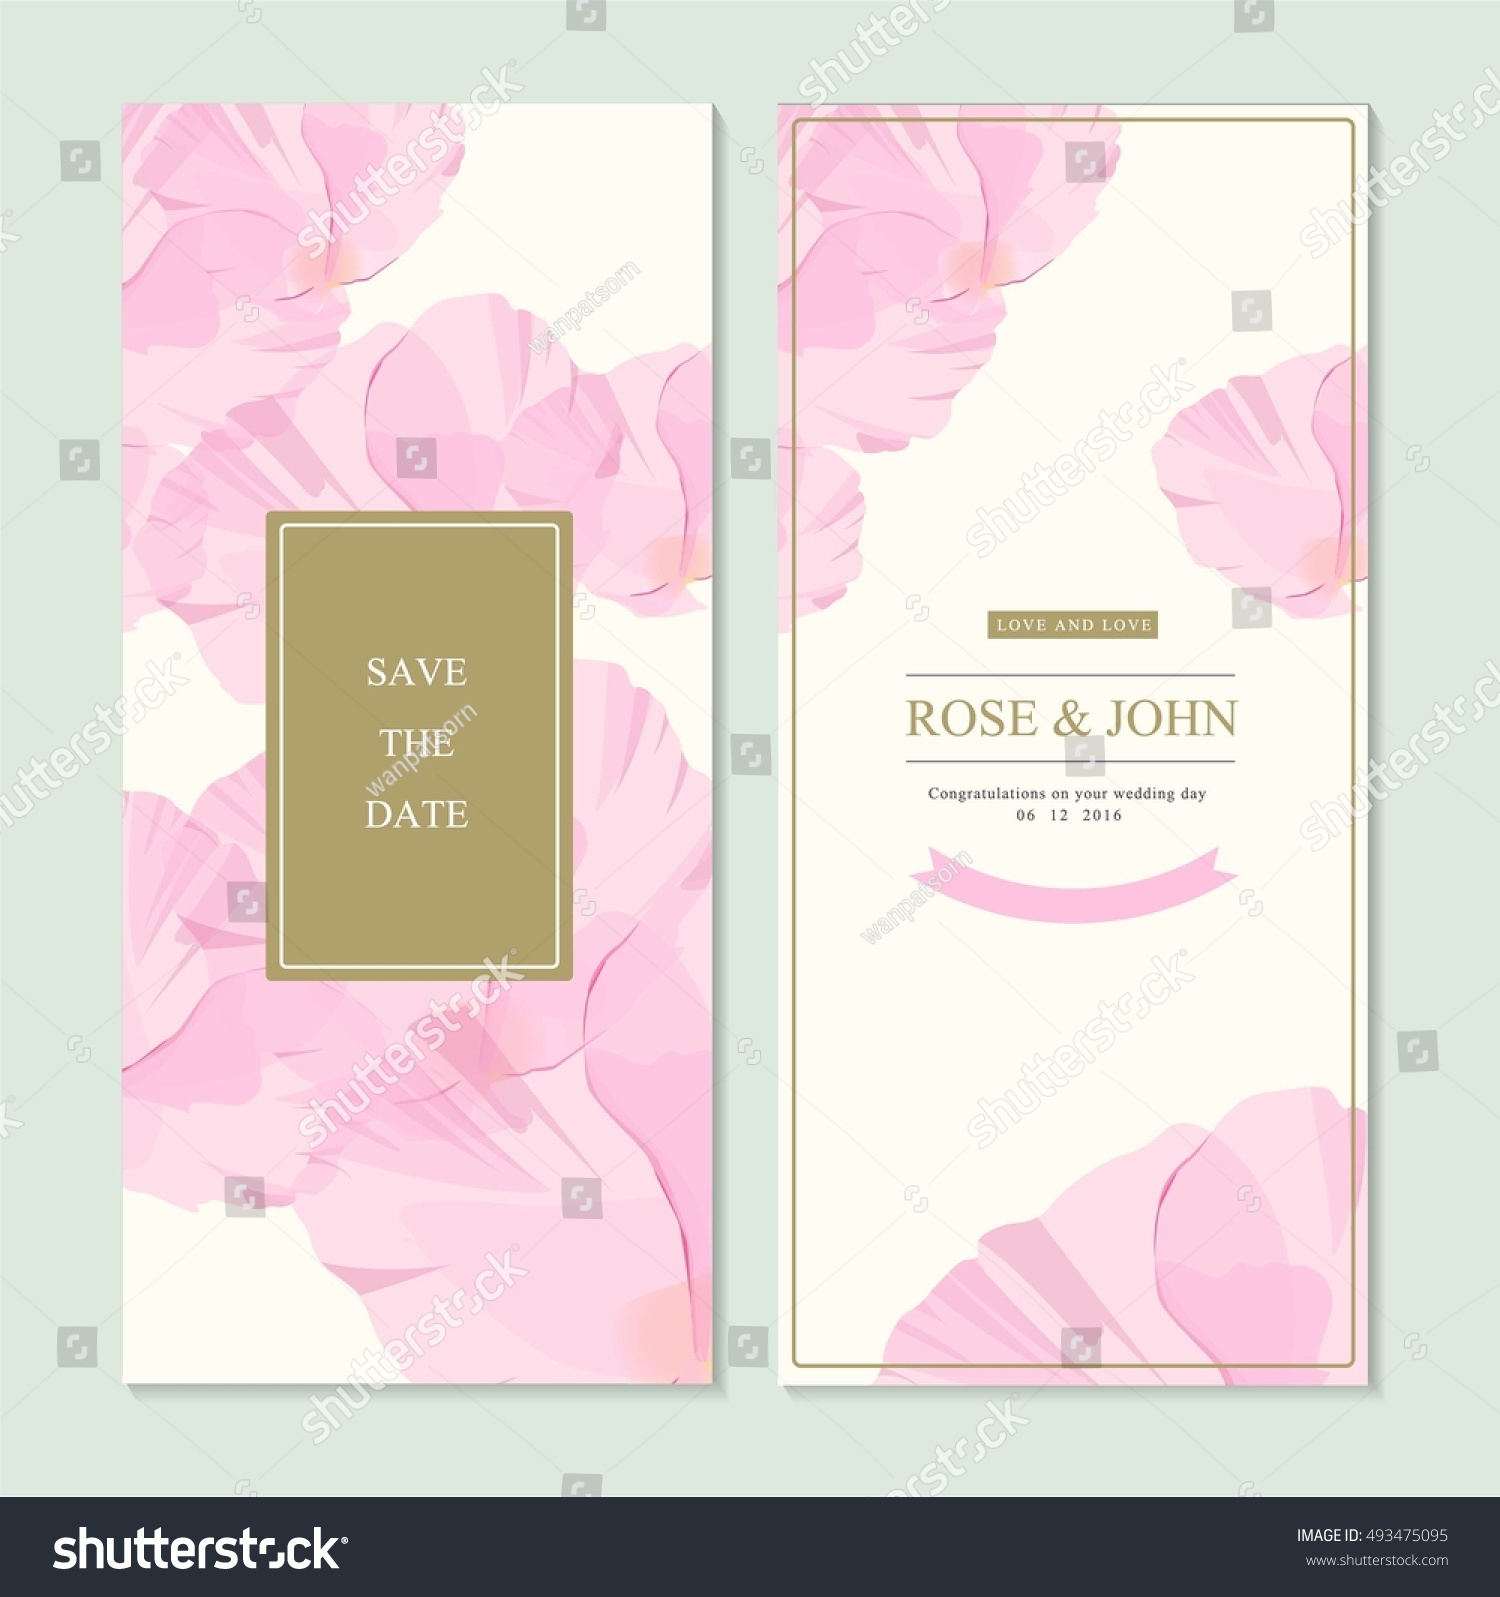 Wedding invitation card suite flower templates em vetor stock wedding invitation card suite with flower templates save the date cards flower vertical banners stopboris Image collections